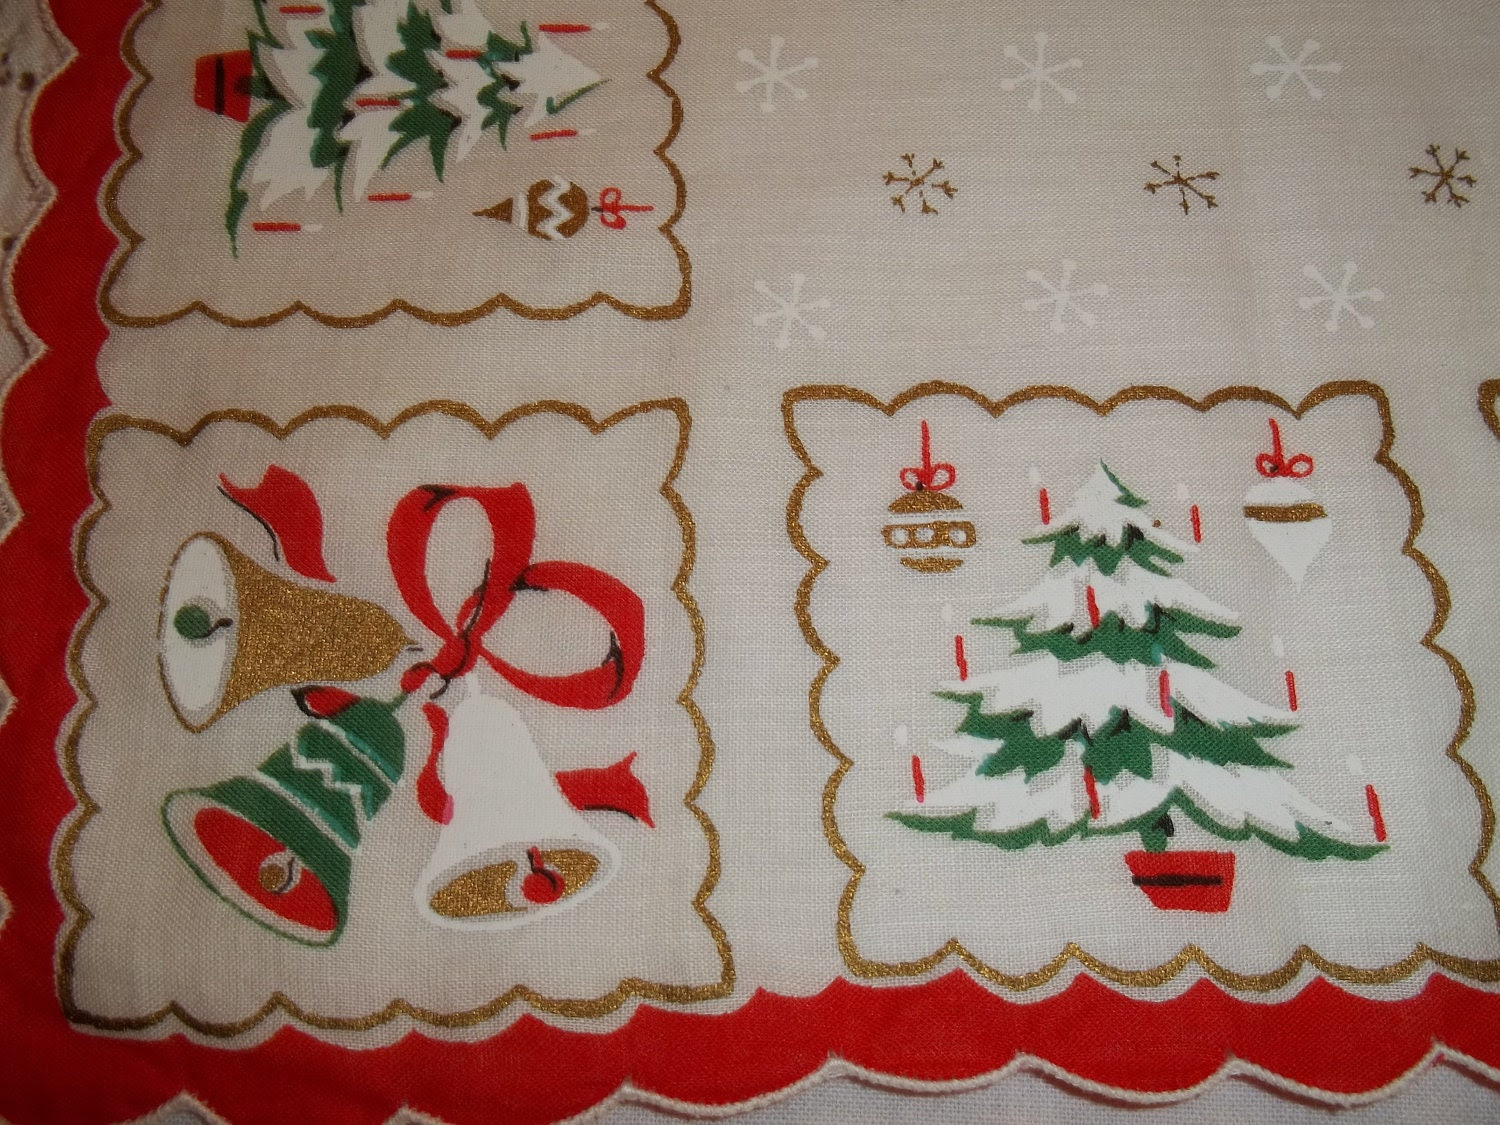 Vintage Christmas Handkerchief Hankie Hanky Mid Century Eames era Alternating Bells and Tree with Scallops and Snowflakes - Route66StLouis